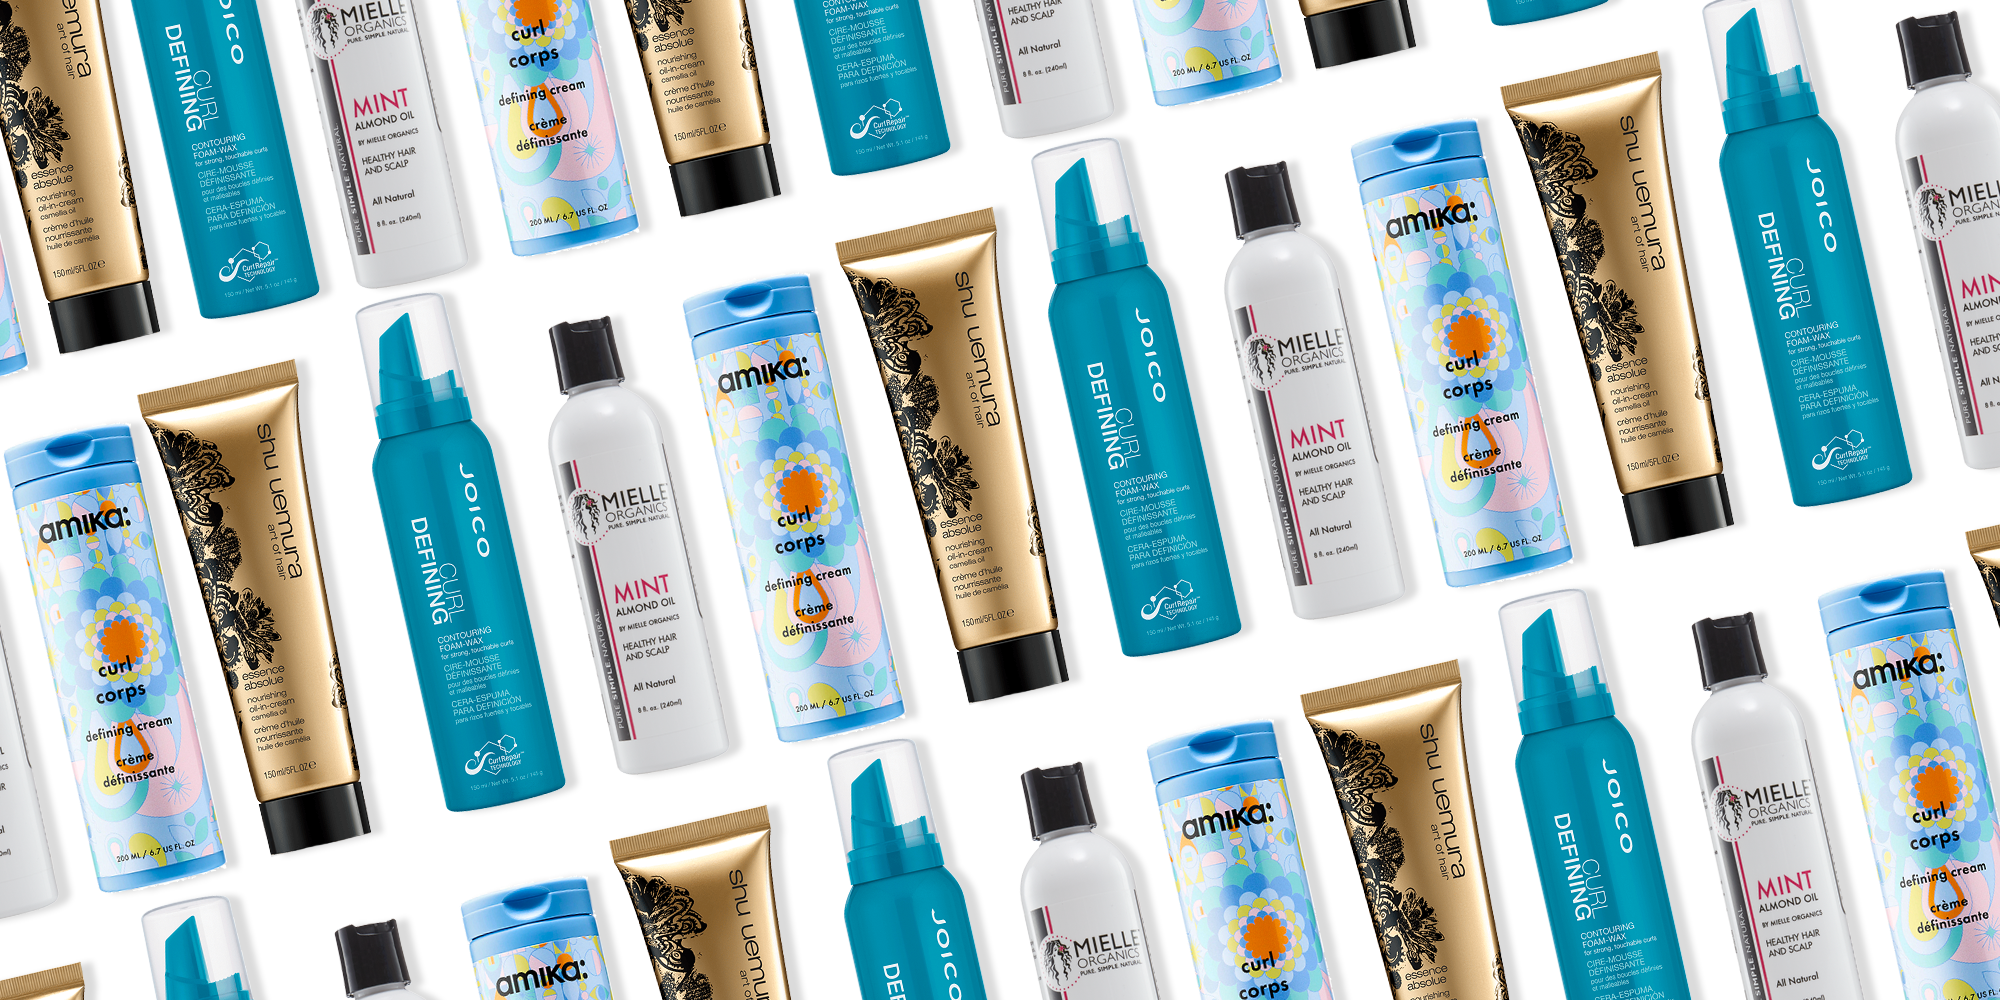 15 Best Styling Products For Curly Hair Best Curl Creams Gels